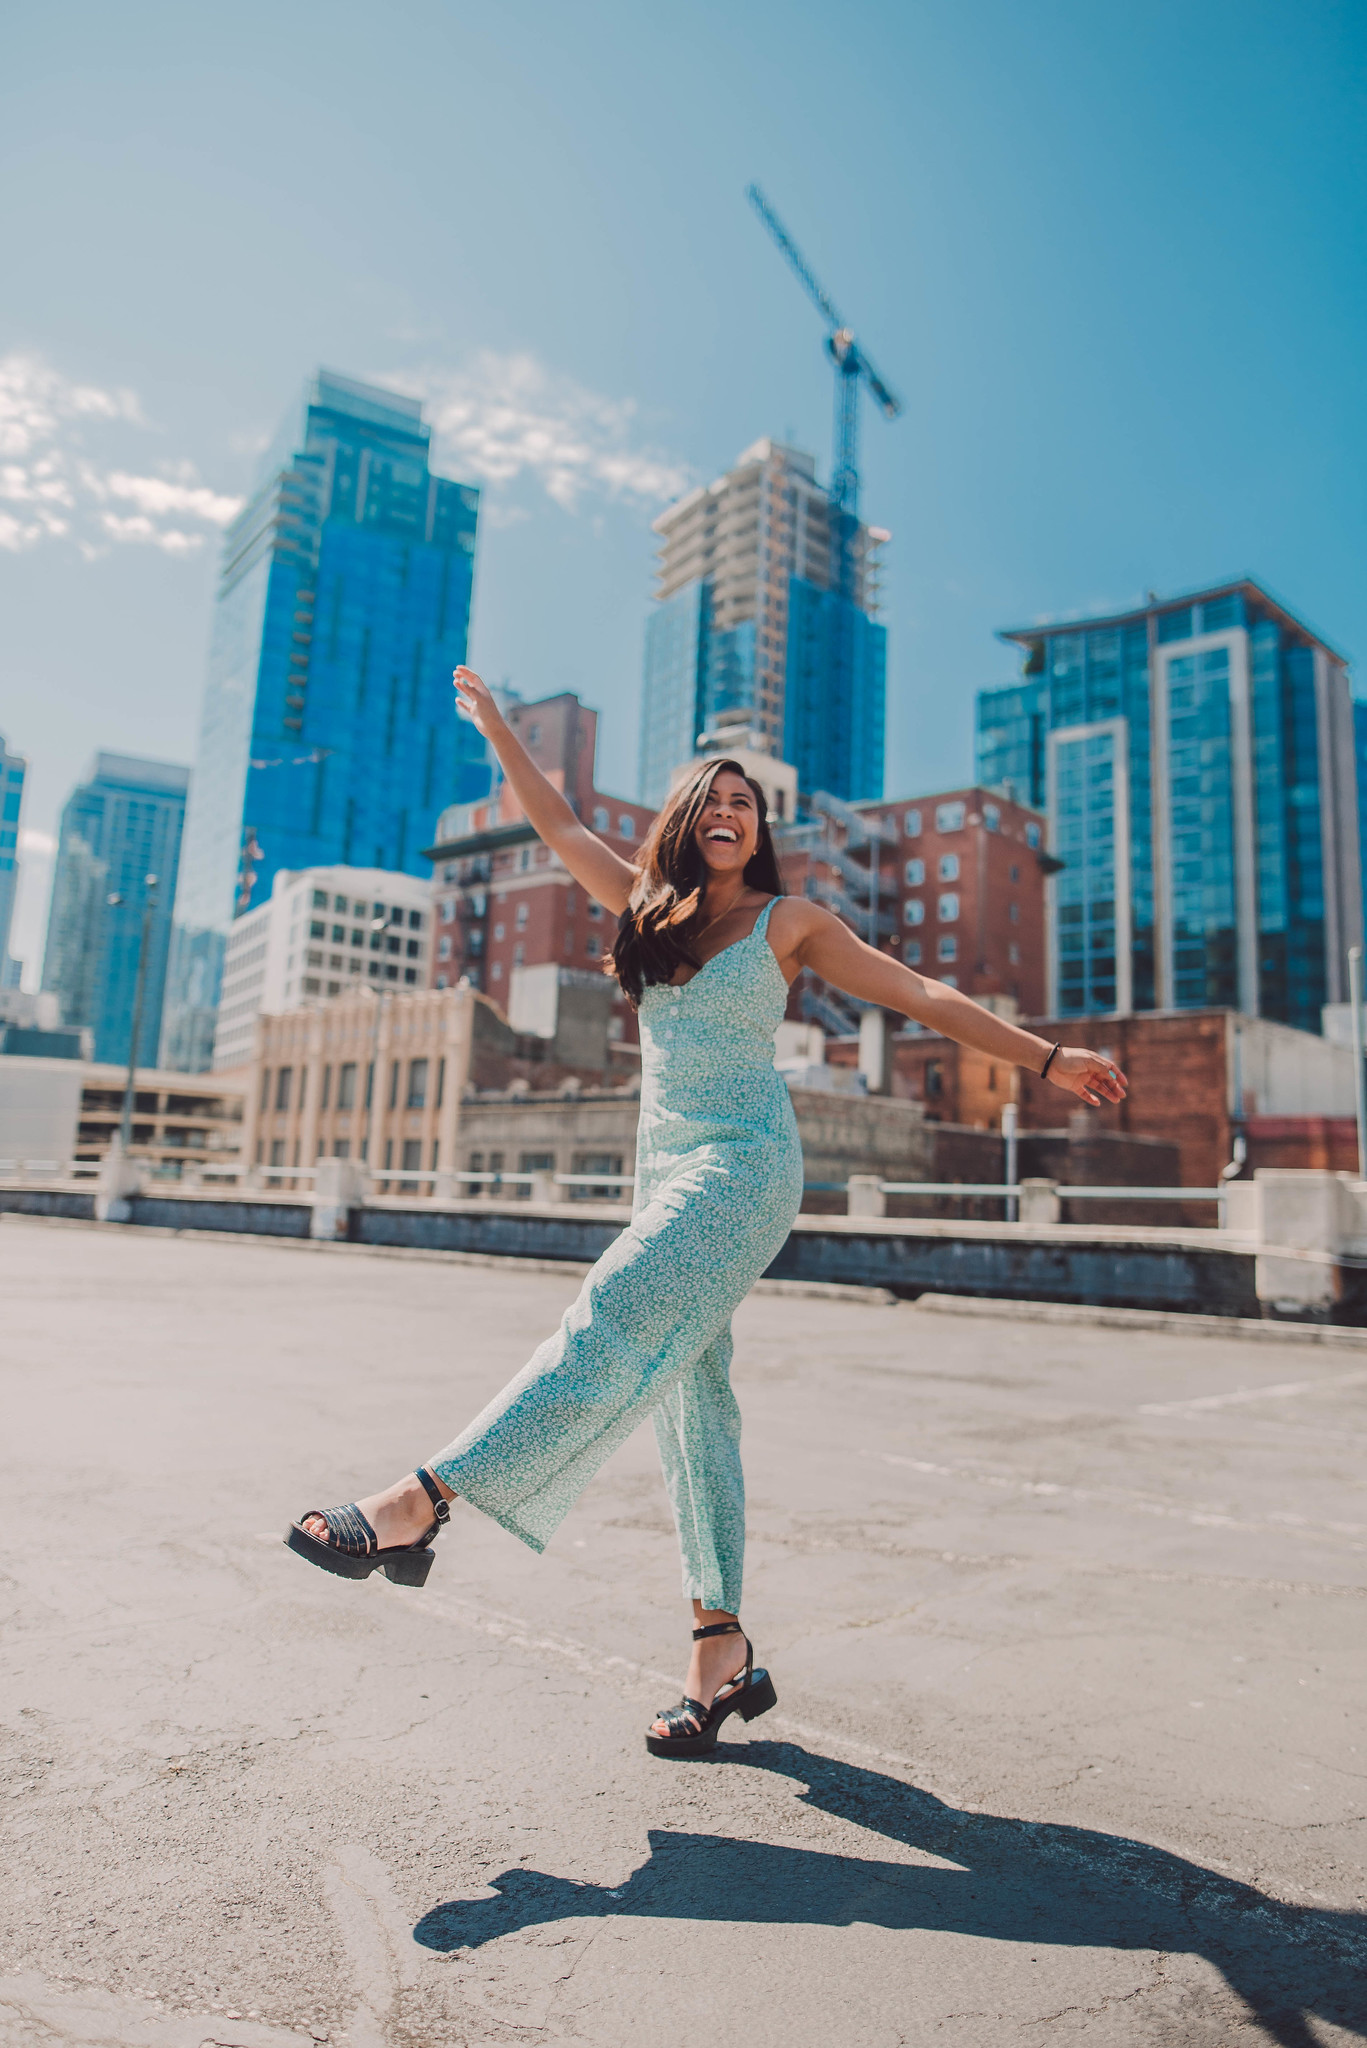 6 Dynamic New Poses You Can Try In Photos